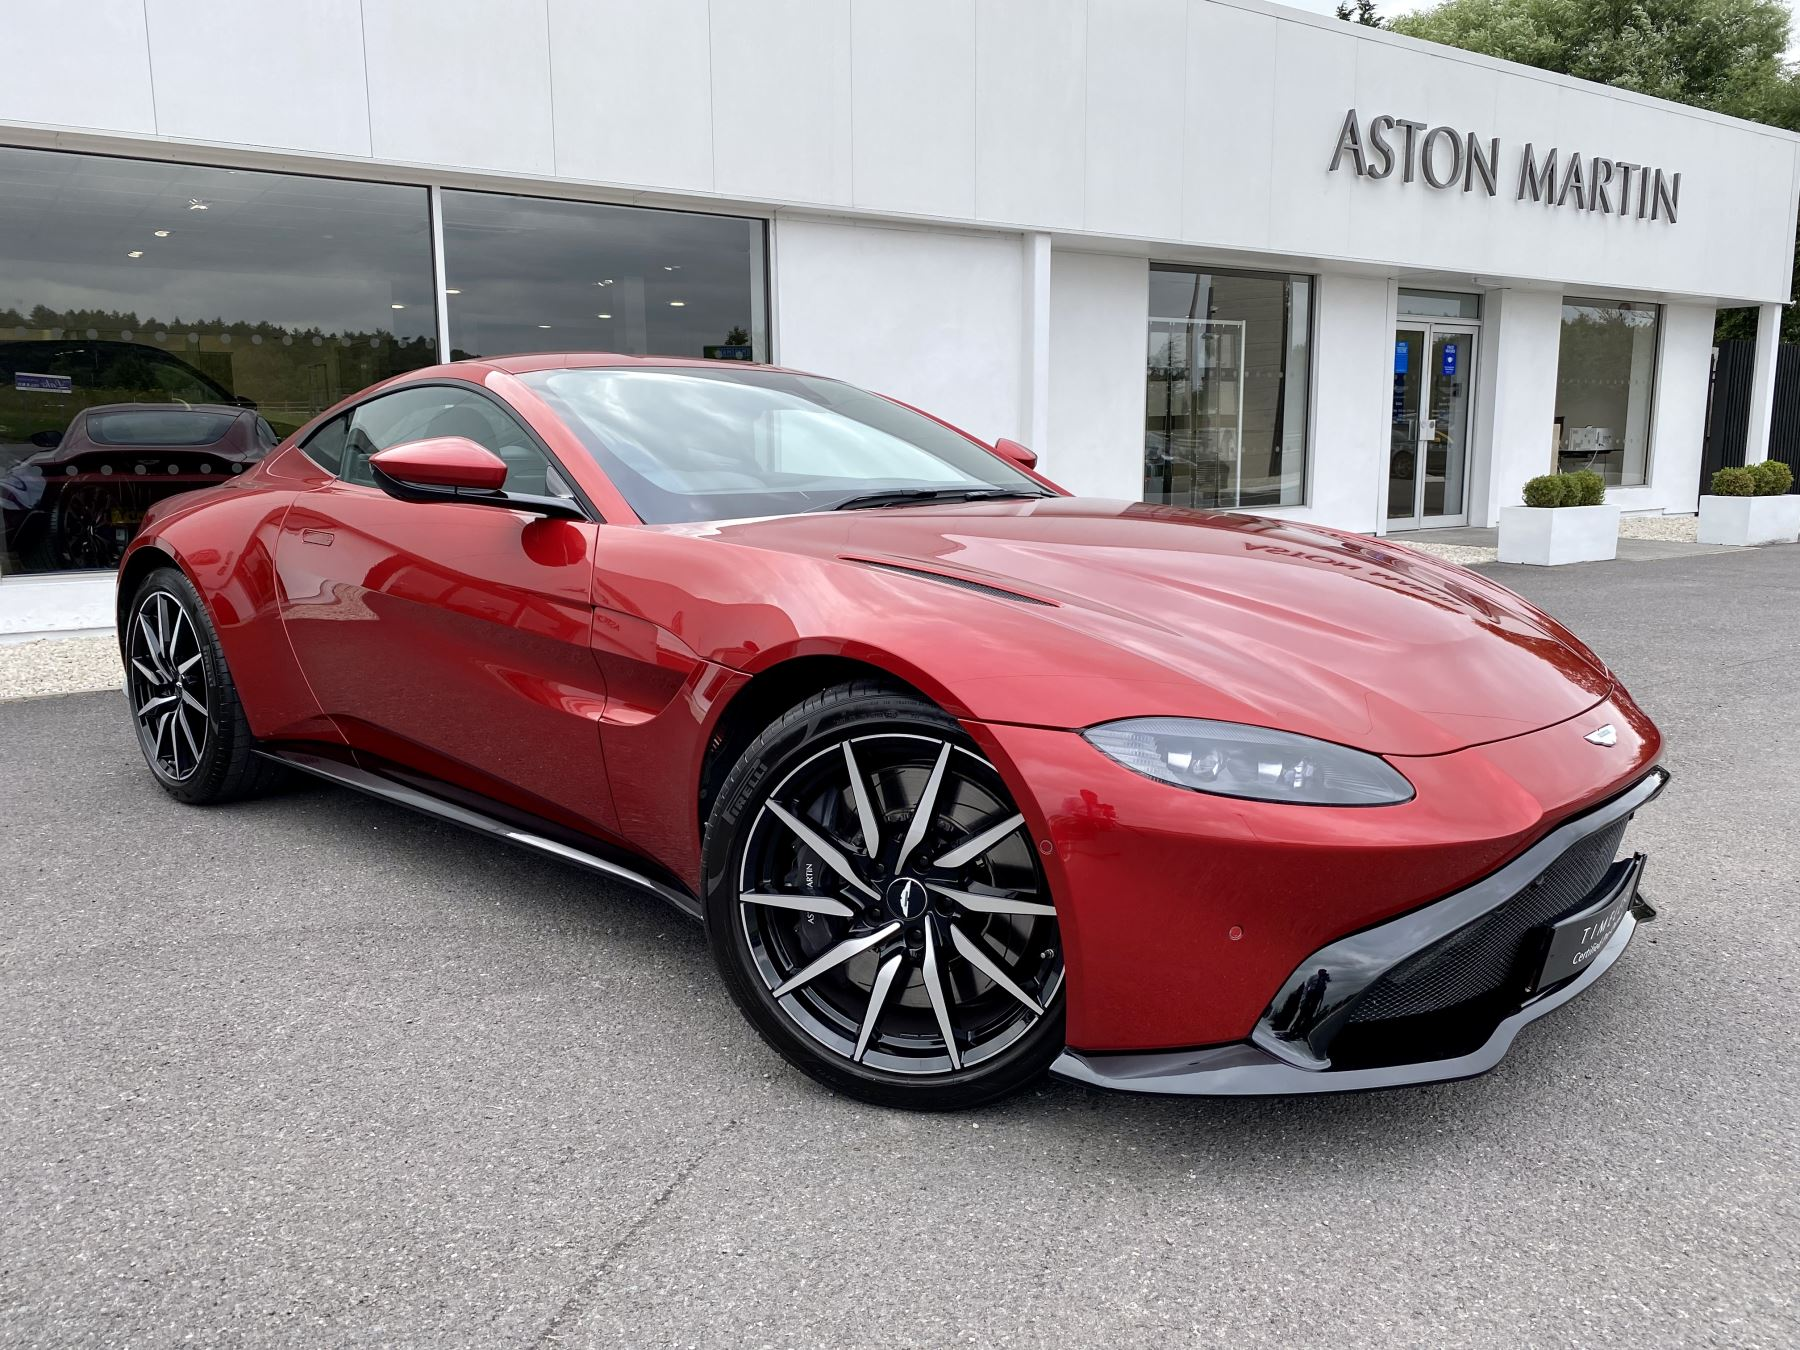 Aston Martin V8 Vantage Coupe 2dr ZF 8 Speed Auto. 4.0 Twin Turbo ZF Gearbox  Reversing Camera Heated Seats  Automatic 3 door Coupe (2019) image